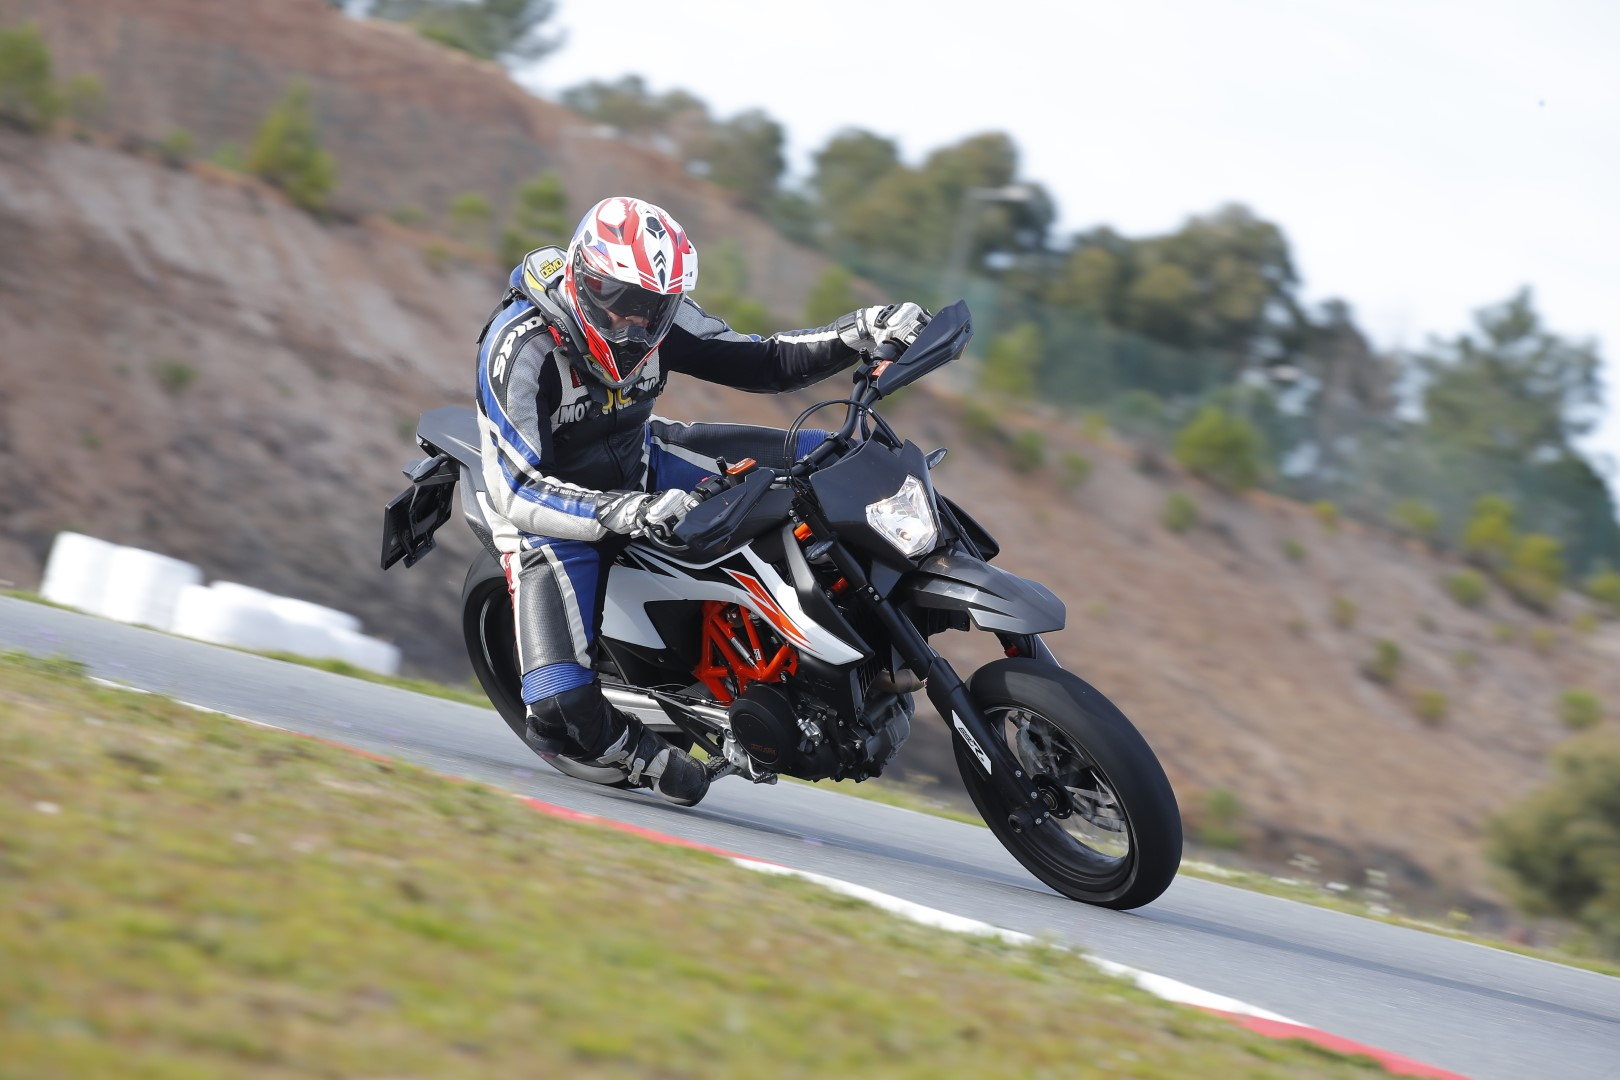 KTM 690 SMC R 2019. Fotos